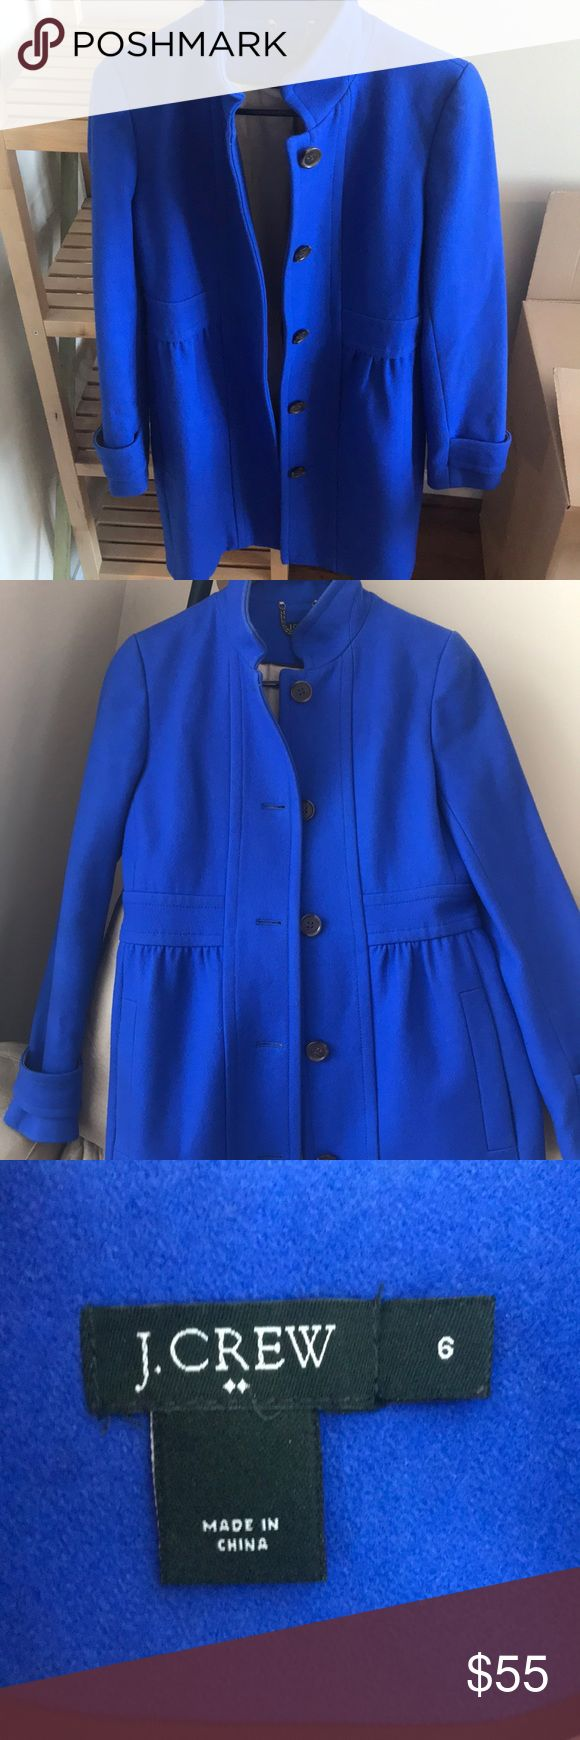 JCrew Women's Coat Authentic J.Crew, knee length coat. Beautiful bright blue color in good condition. Size 6 but runs on the small size ( I am usually a 4). J. Crew Jackets & Coats Pea Coats